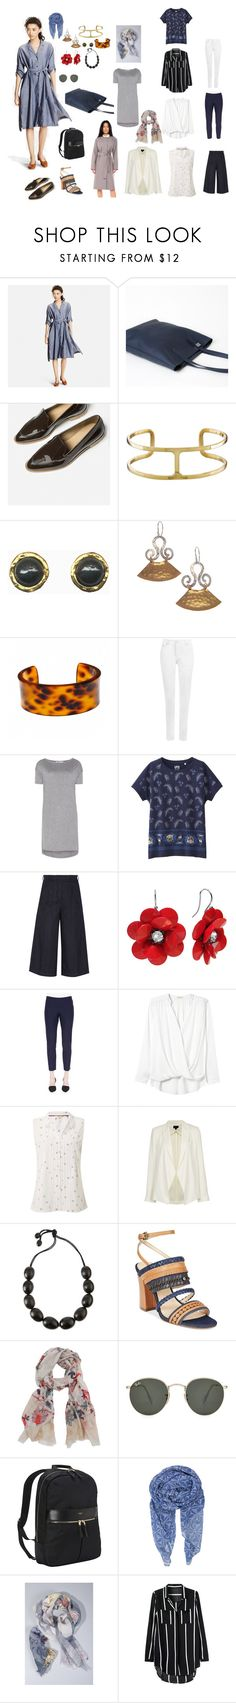 """Untitled #600"" by clothes-wise ❤ liked on Polyvore featuring Uniqlo, Evelyn Knight, Fornash, WearAll, T By Alexander Wang, Iris & Ink, Eileen Fisher, Rebecca Taylor, White Stuff and Topshop"